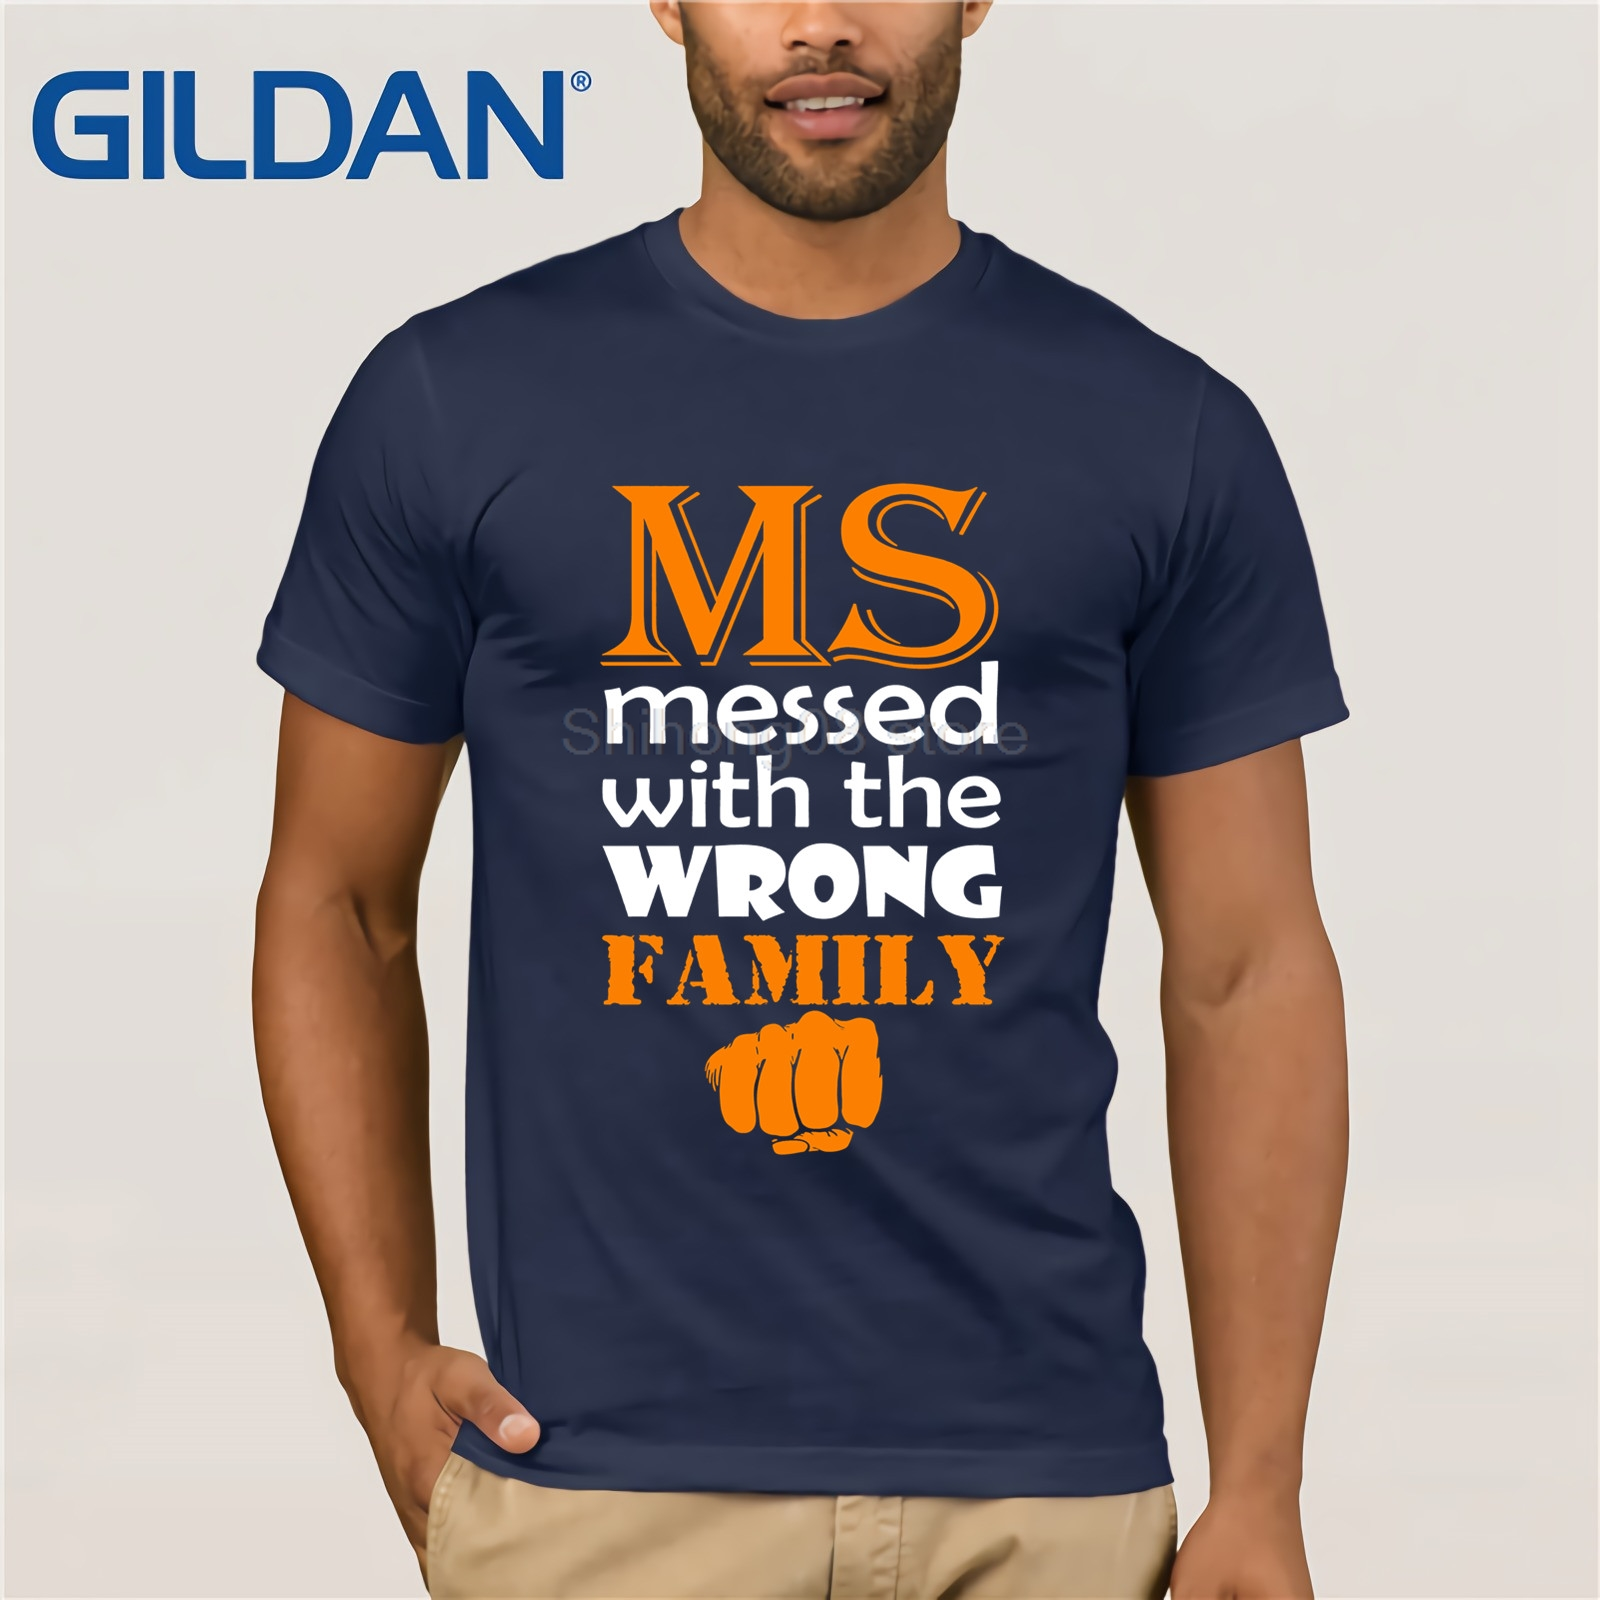 c3dc0fa6 GILDAN MS Messed With Wrong Family Multiple Sclerosis Awareness Tee Icon  Emoji Fashion Design T Shirt summer T shirt-in T-Shirts from Men's Clothing  on ...